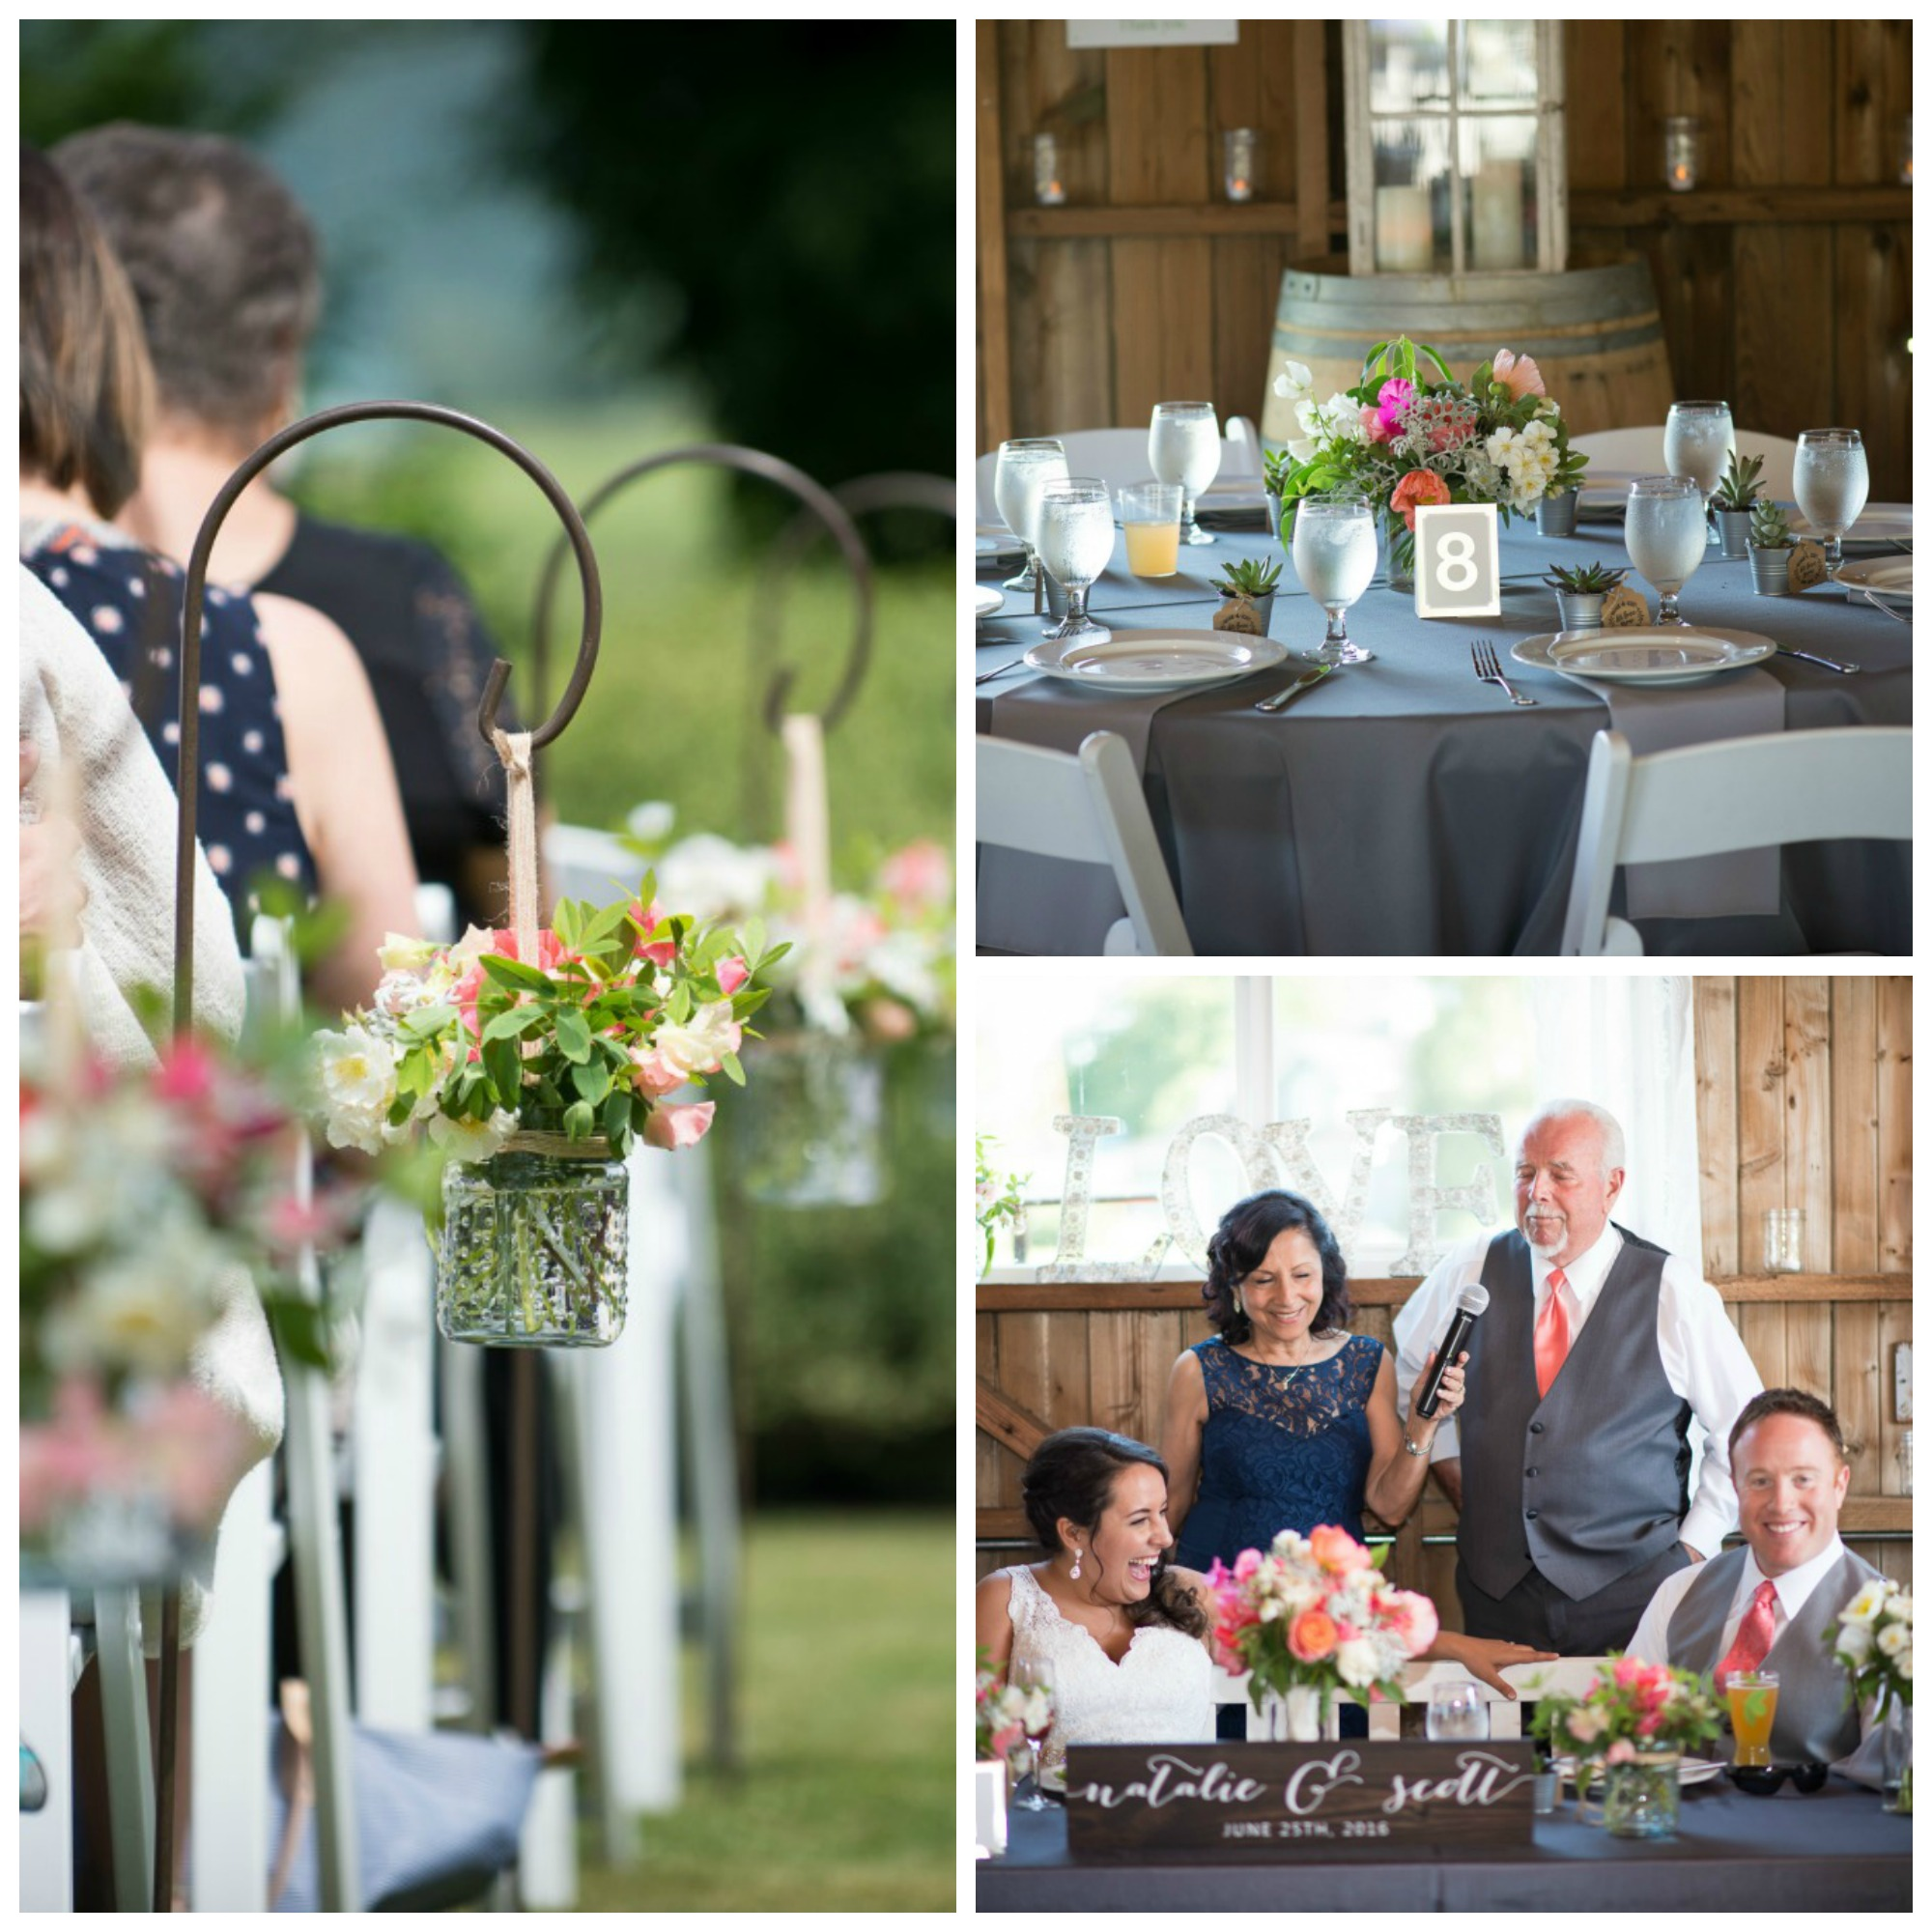 countrybouquetsfloral-collage-natalieandscottwedding-lucashenningphotographic-004